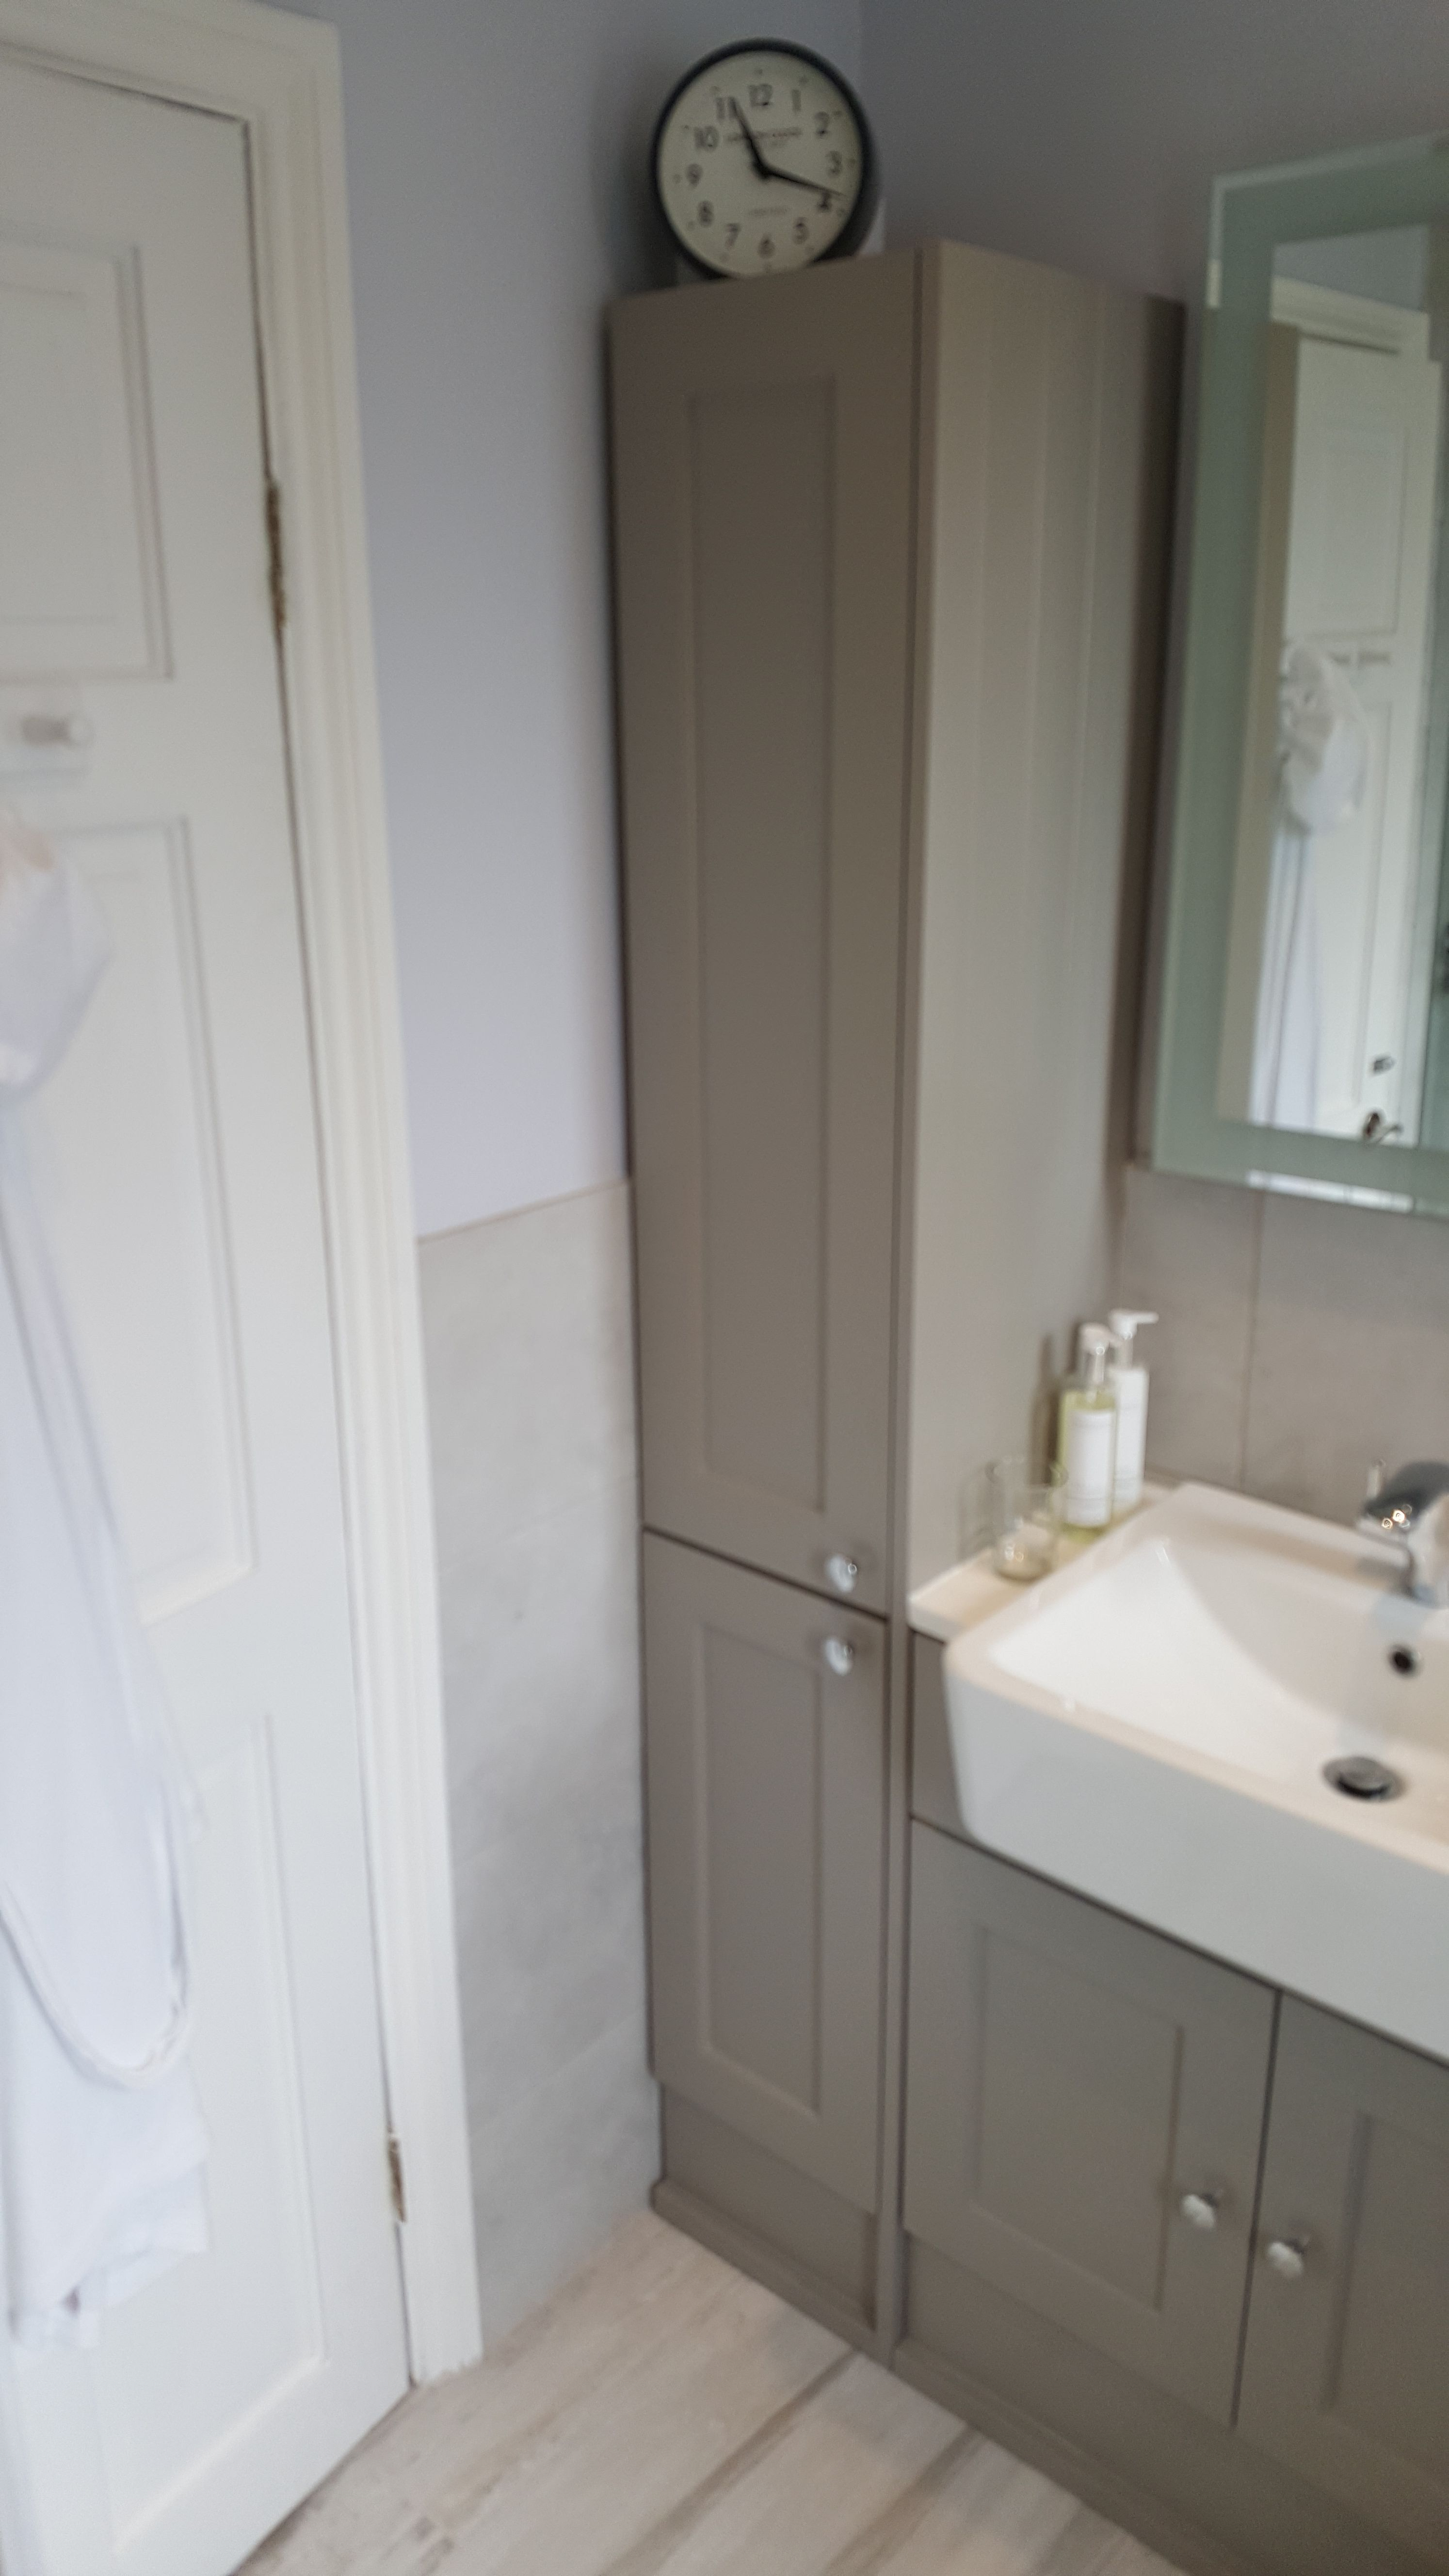 Roper Rhodes fitted furniture in 2019 | Bathroom, Fitted ...